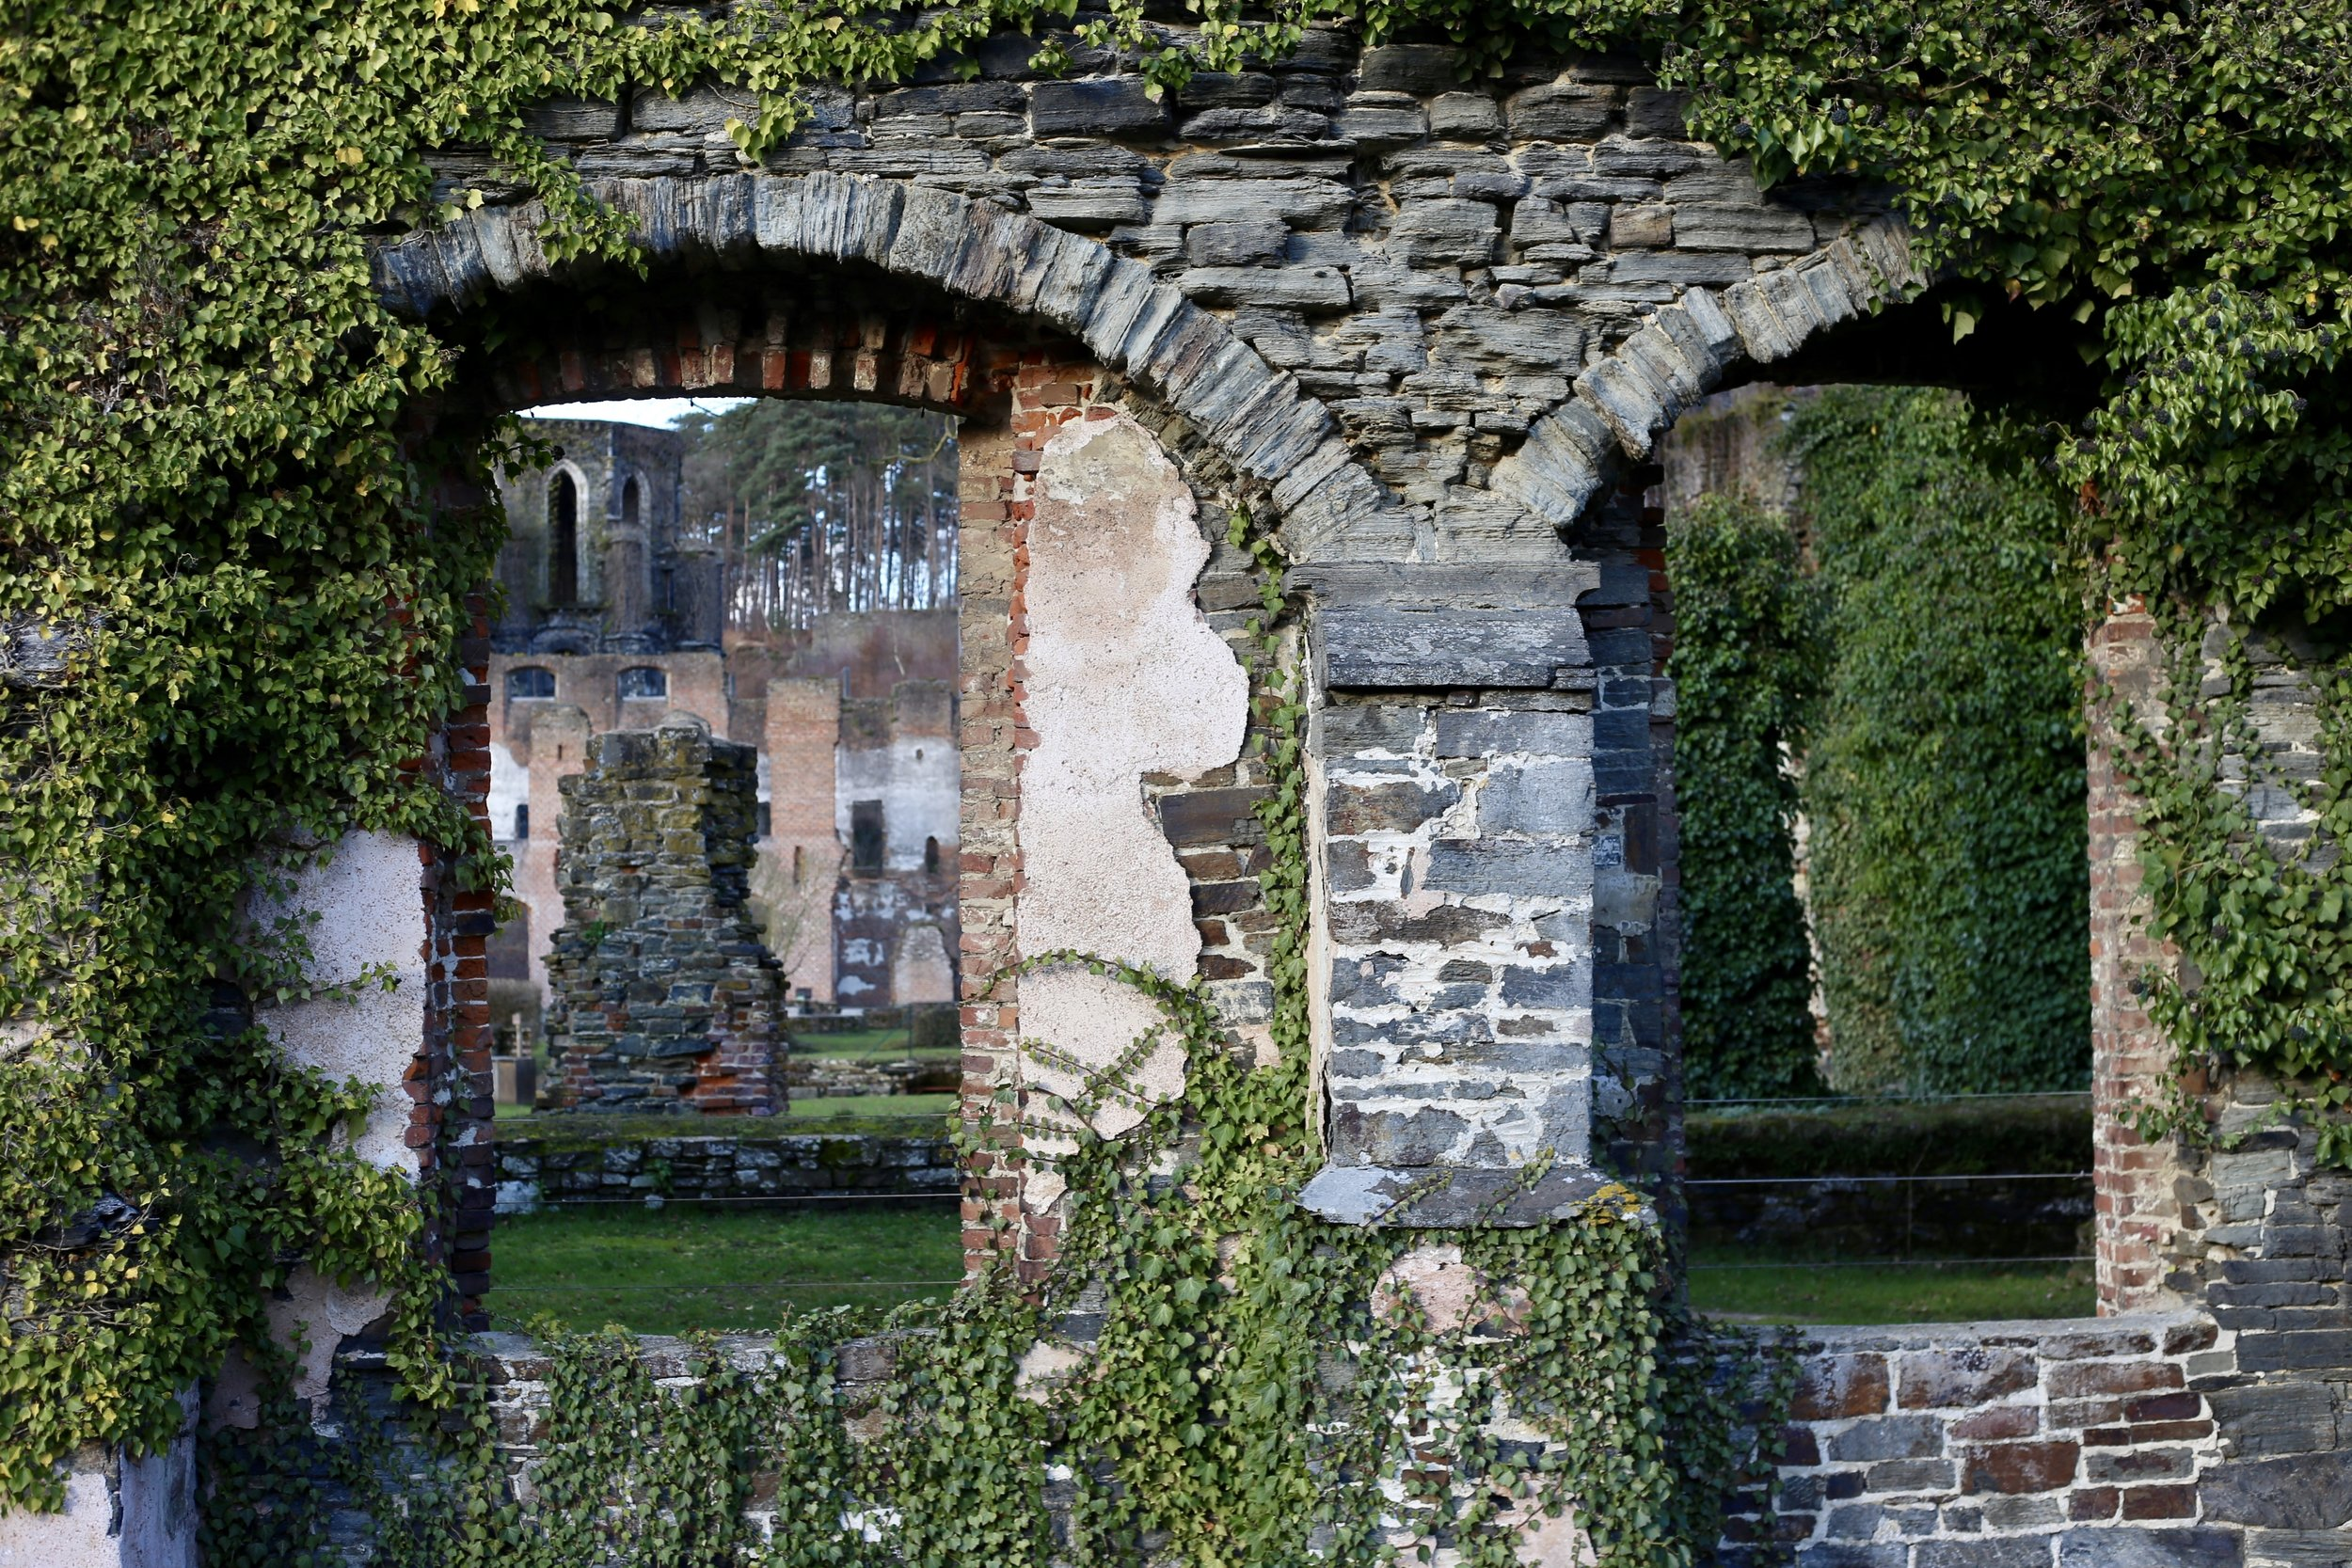 The ruined stone walls and ivy clad gardens of Abbaye de Villers.